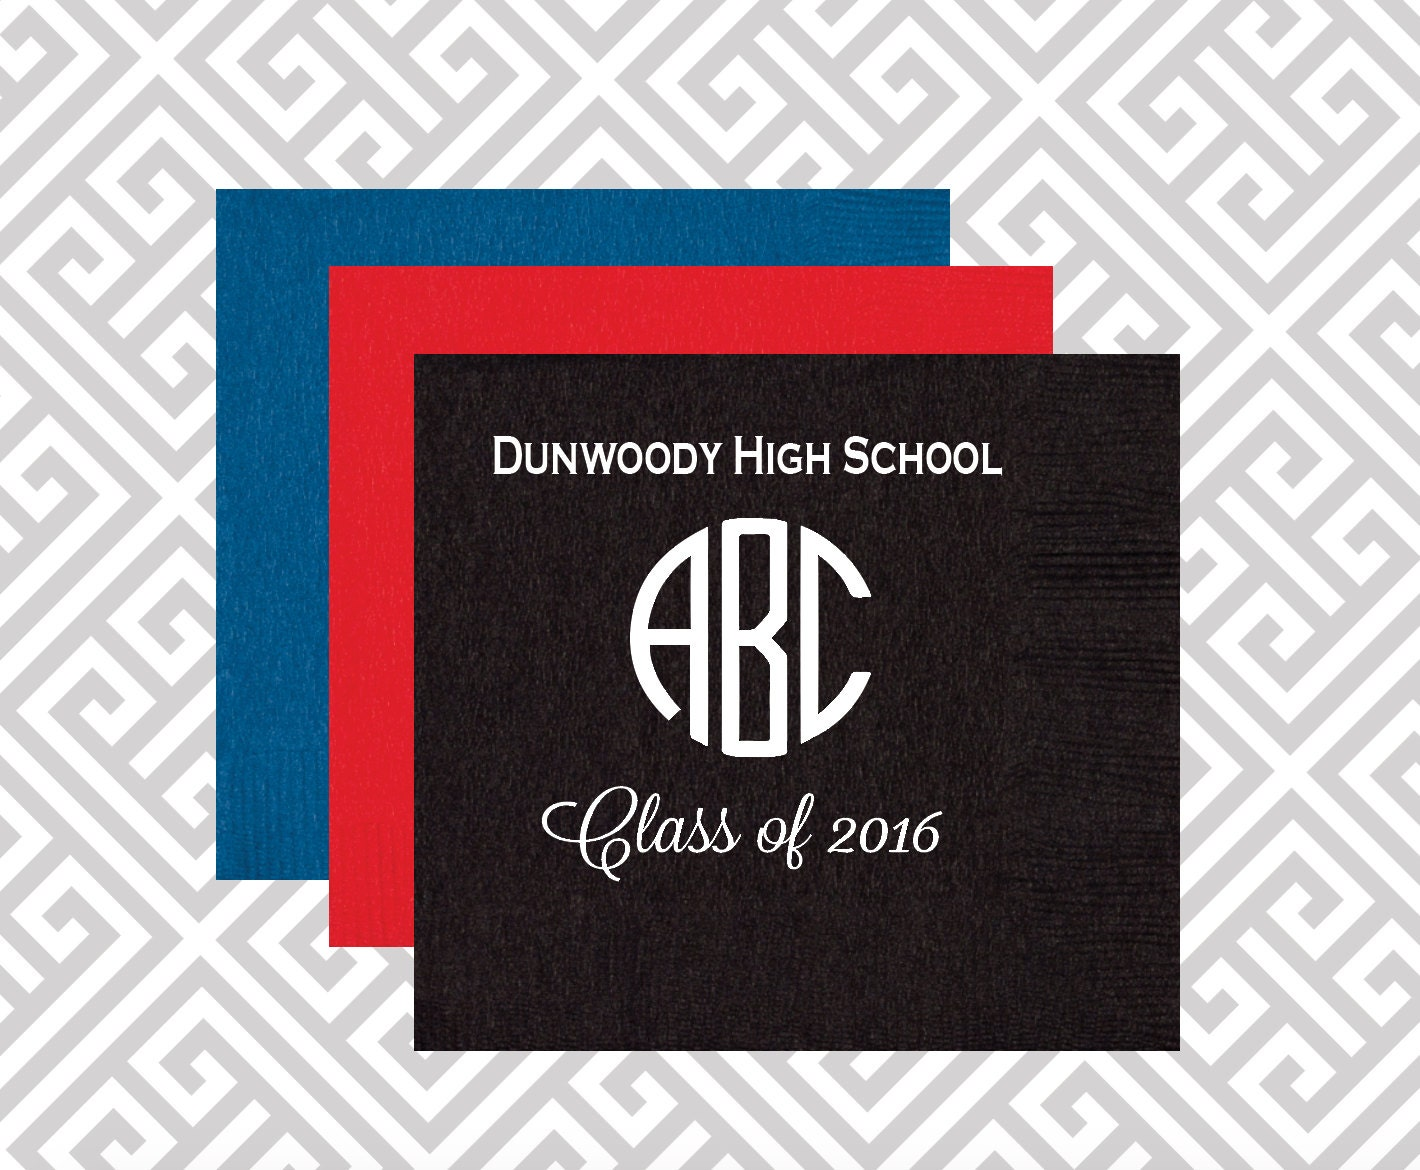 cheap graduation paper products Custom printed paper napkins categories cocktail napkins 33 dinner  check out our custom napkins these products will help you complete your event with style.